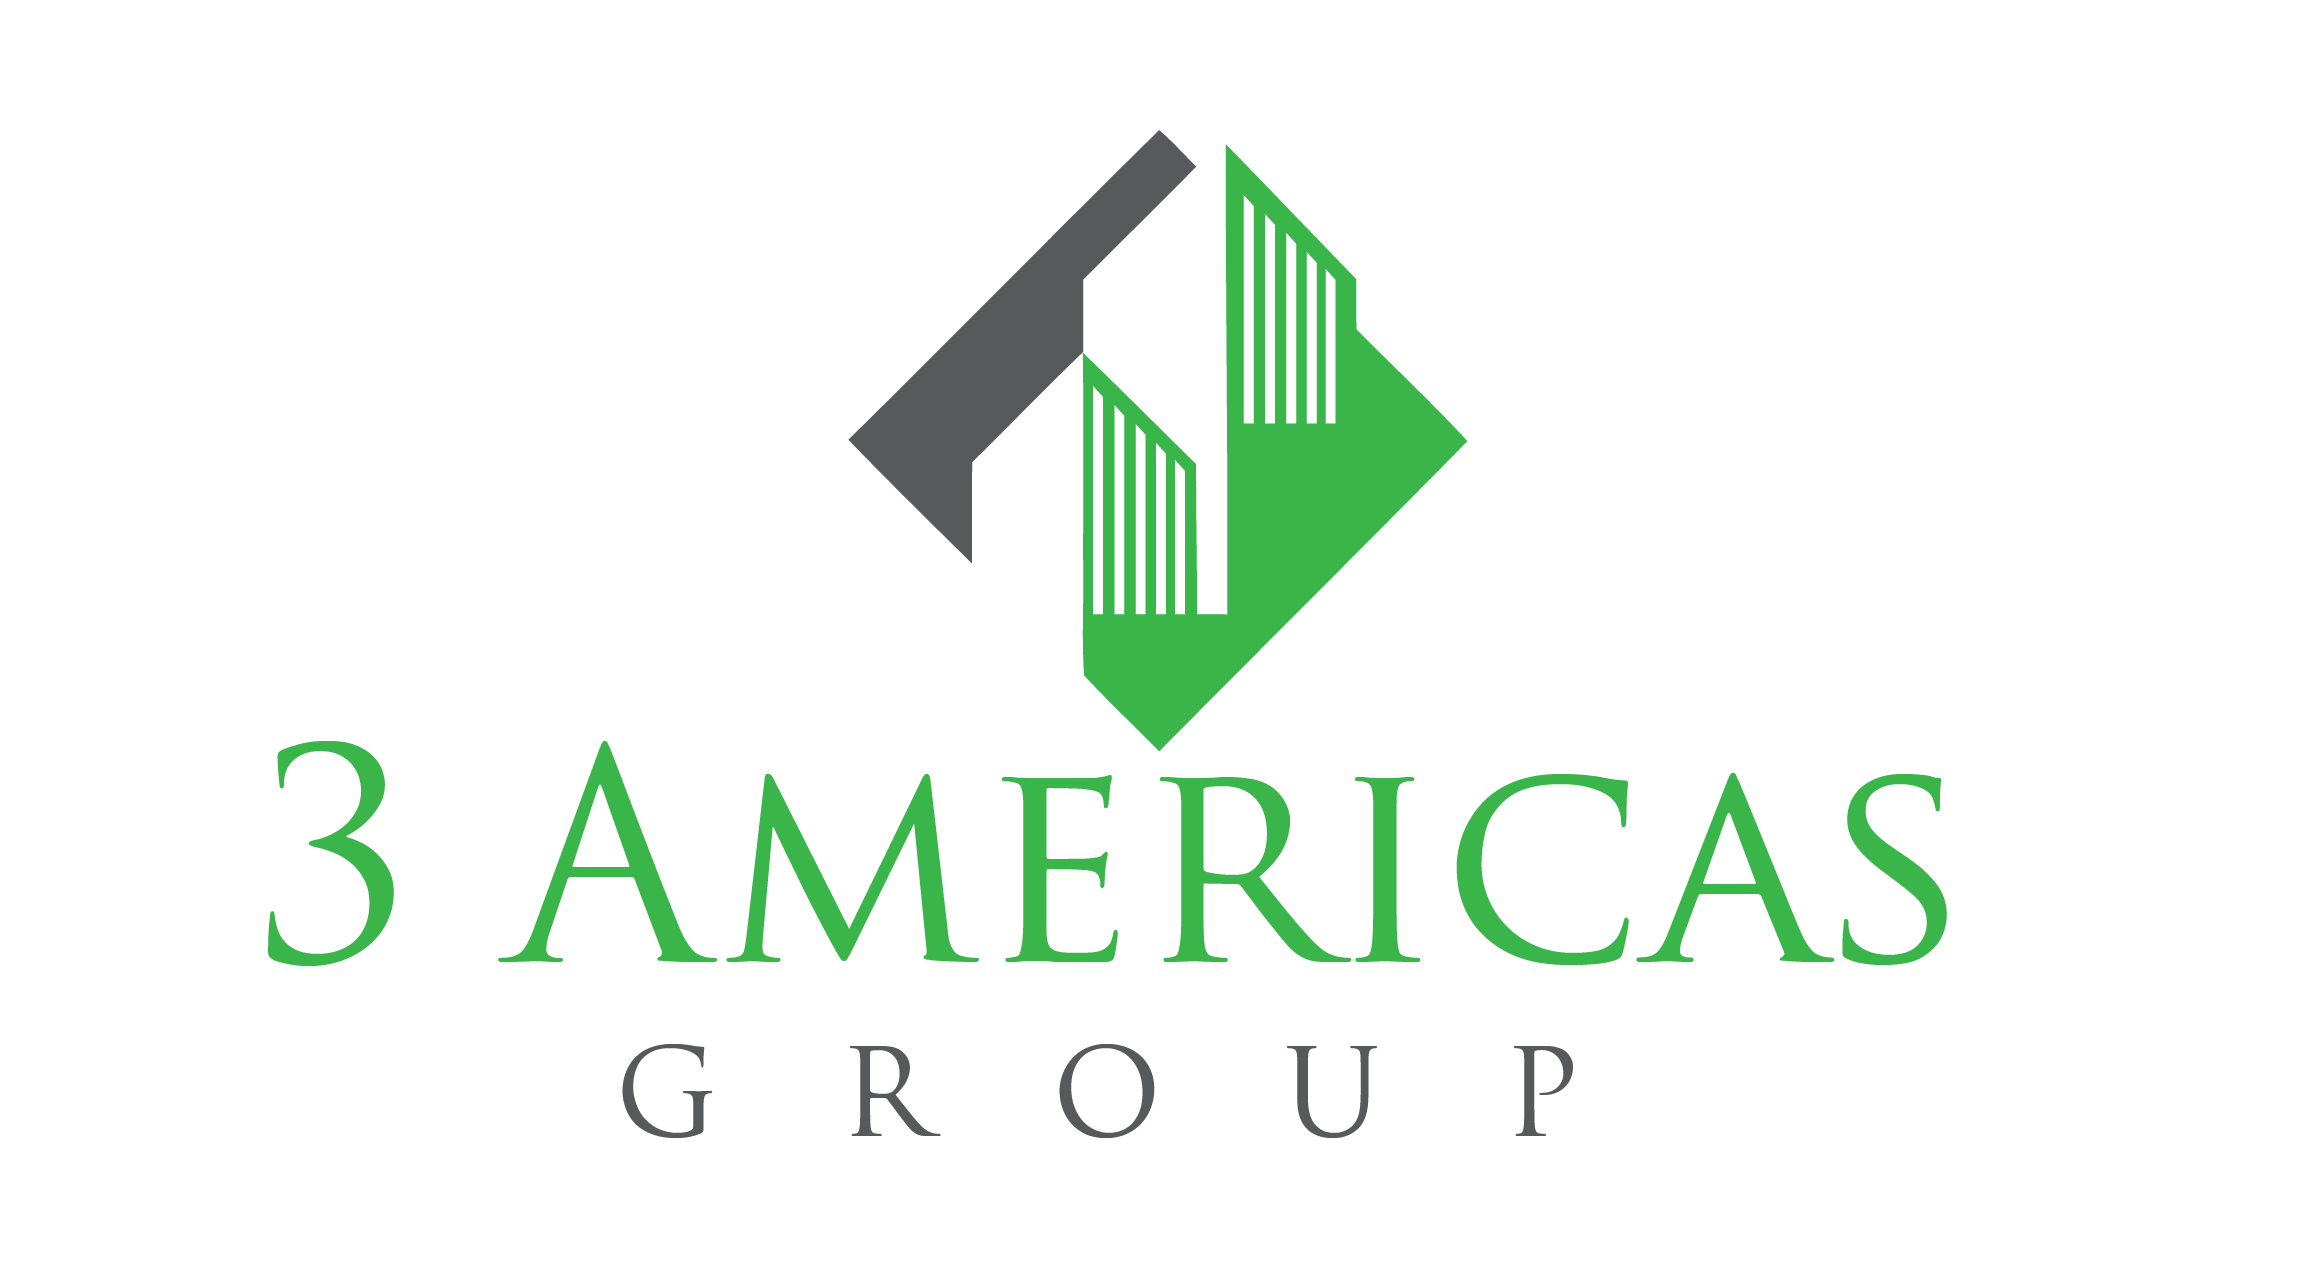 3 Americas Group of Real Estate